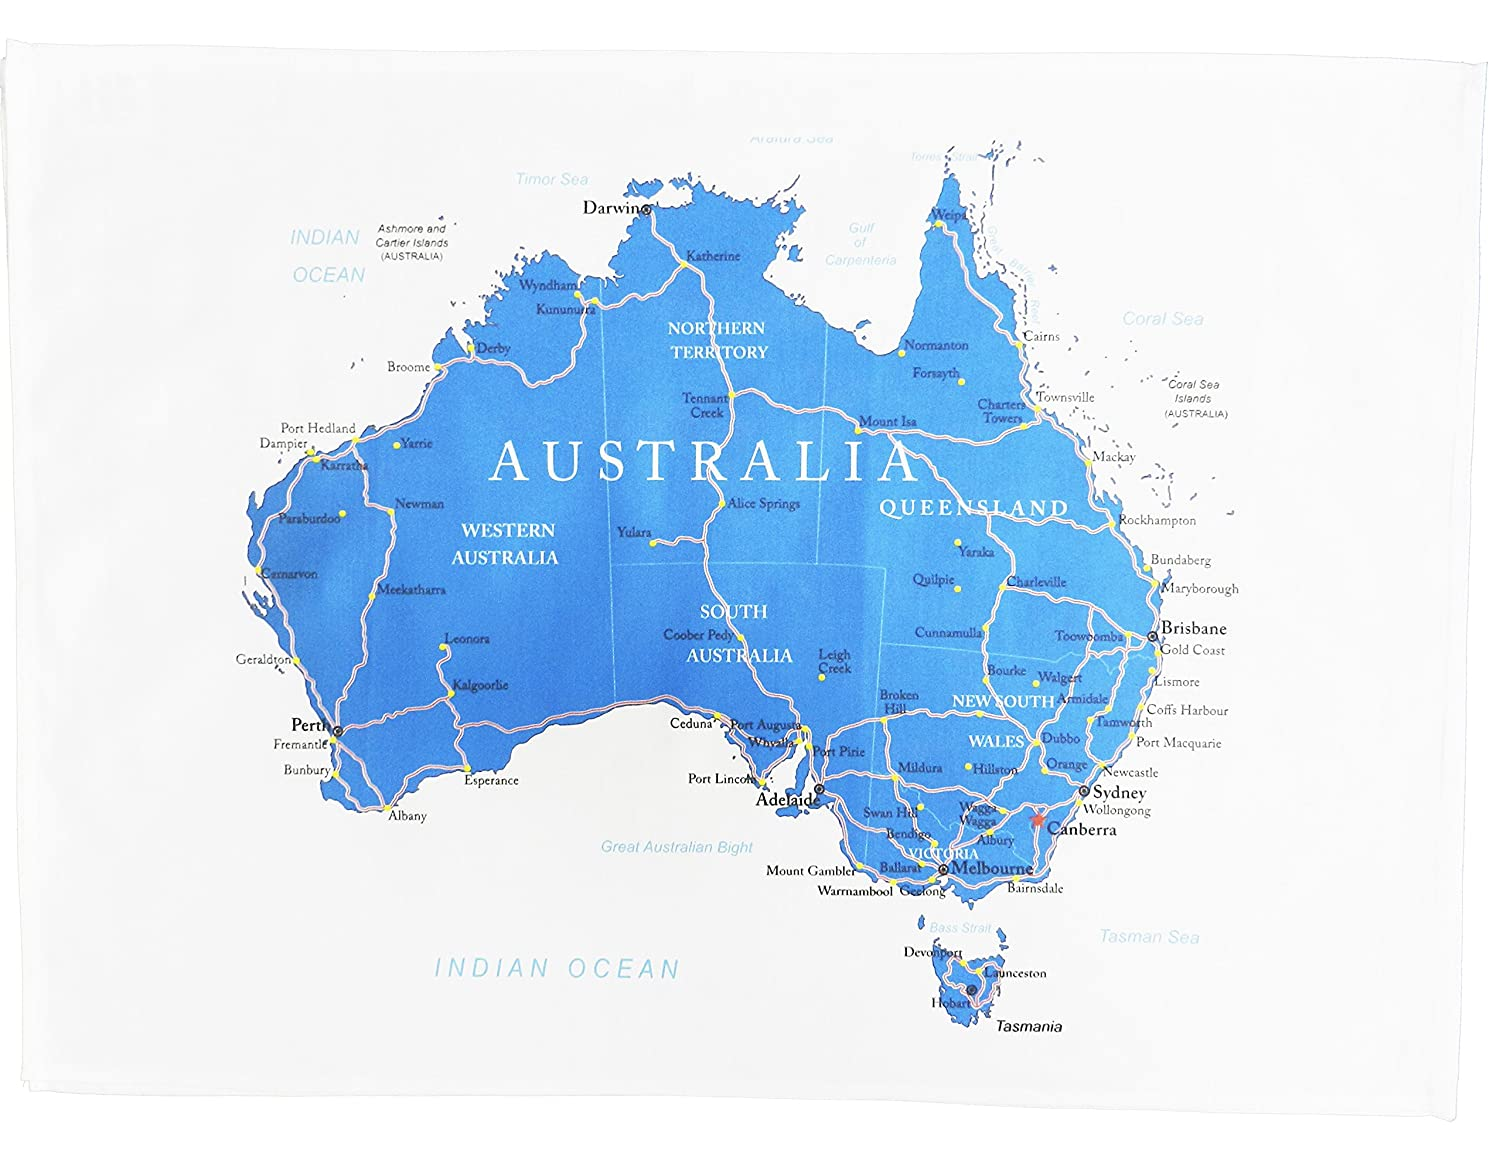 Australia Map Main Cities.Half A Donkey Map Of Australia Showing The States Main Cities And Roads Large Cotton Tea Towel